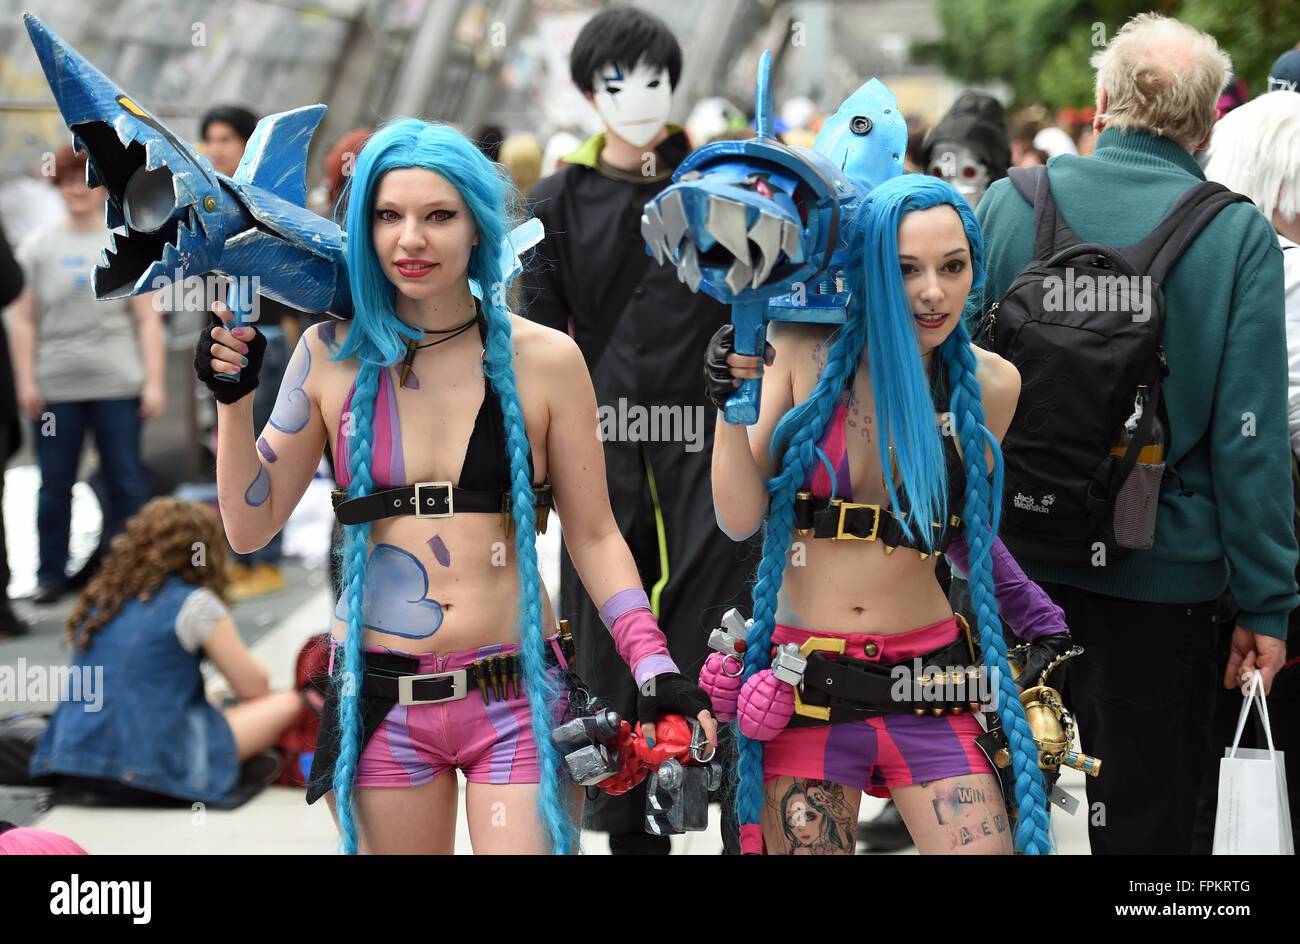 Gamescom 2020 Cosplay